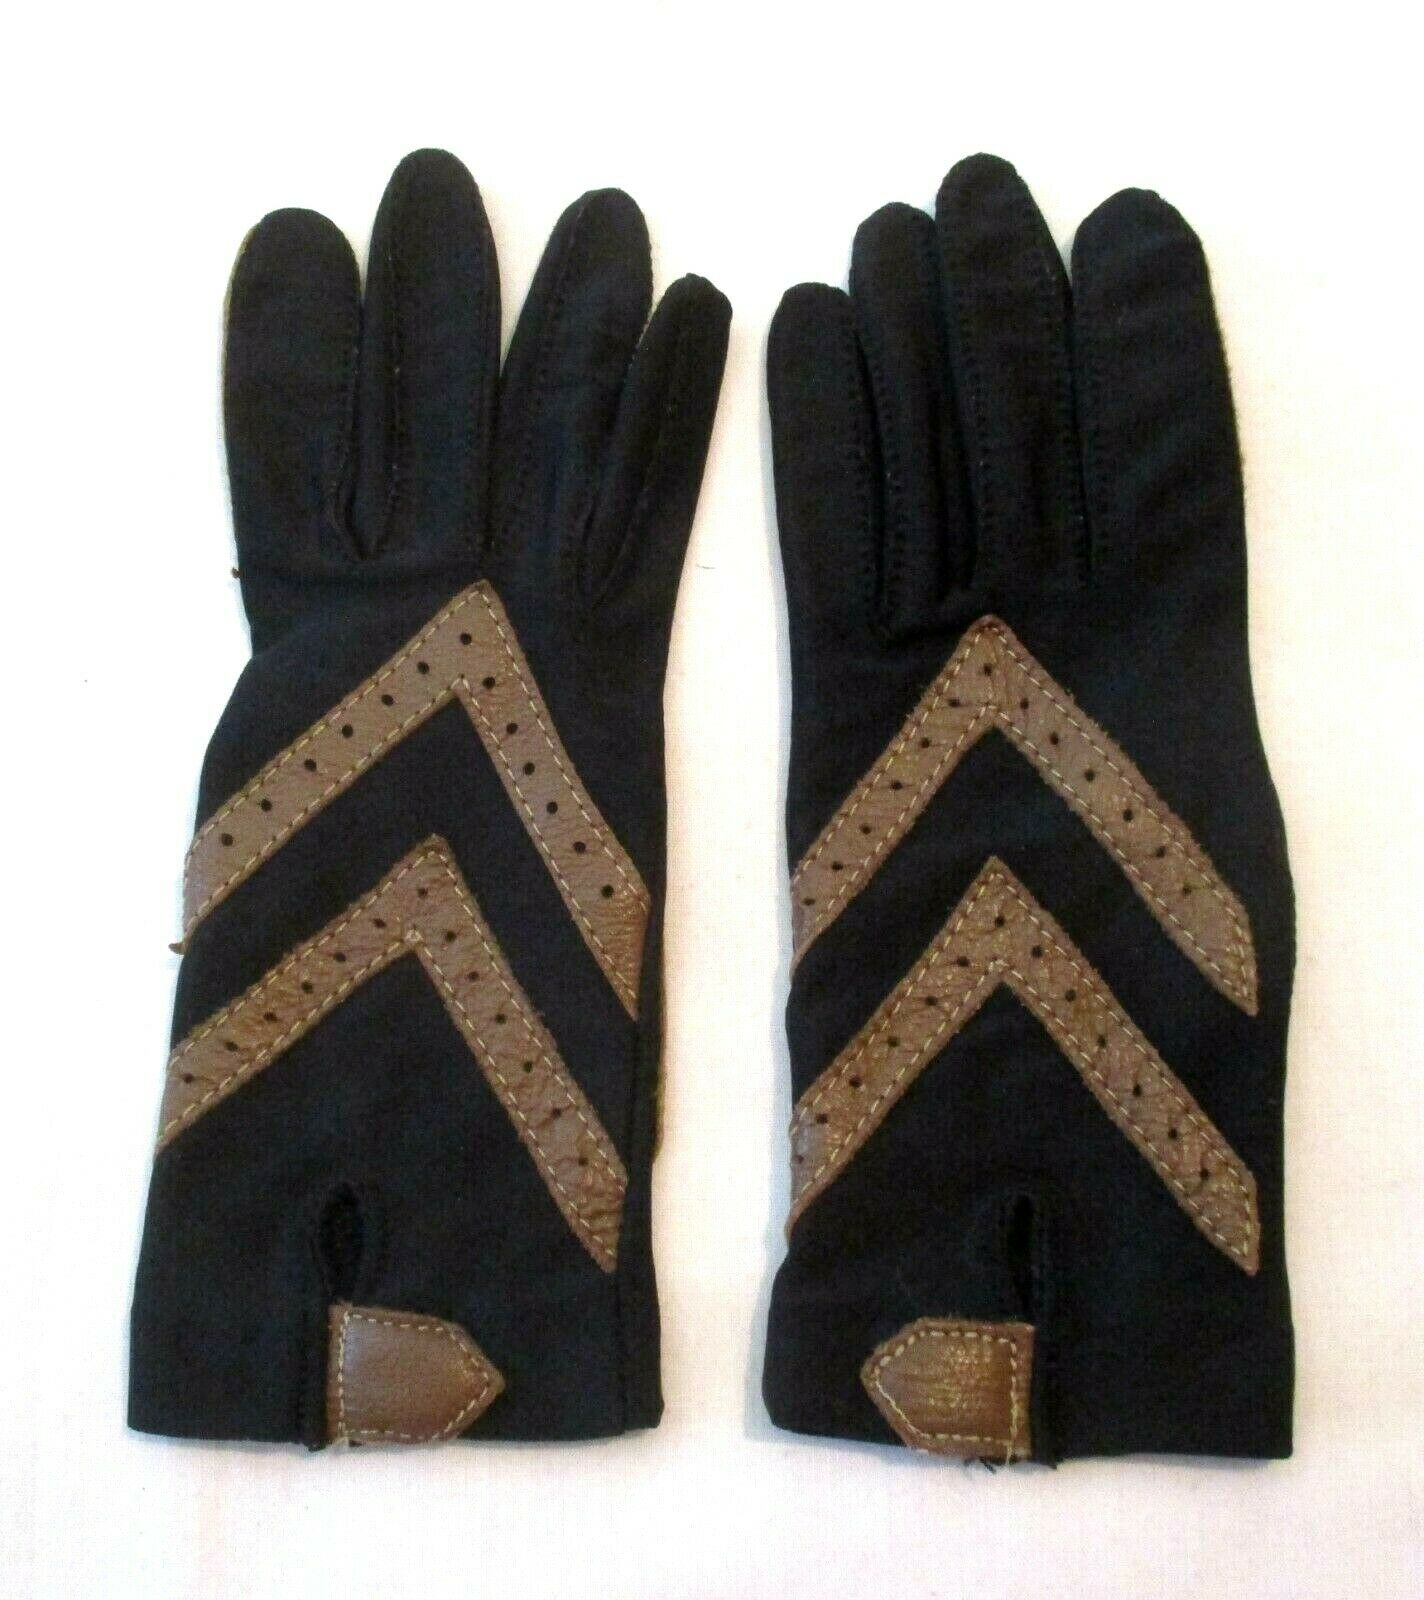 Isotoner Black and Tan Driving Gloves, One Size Fits All